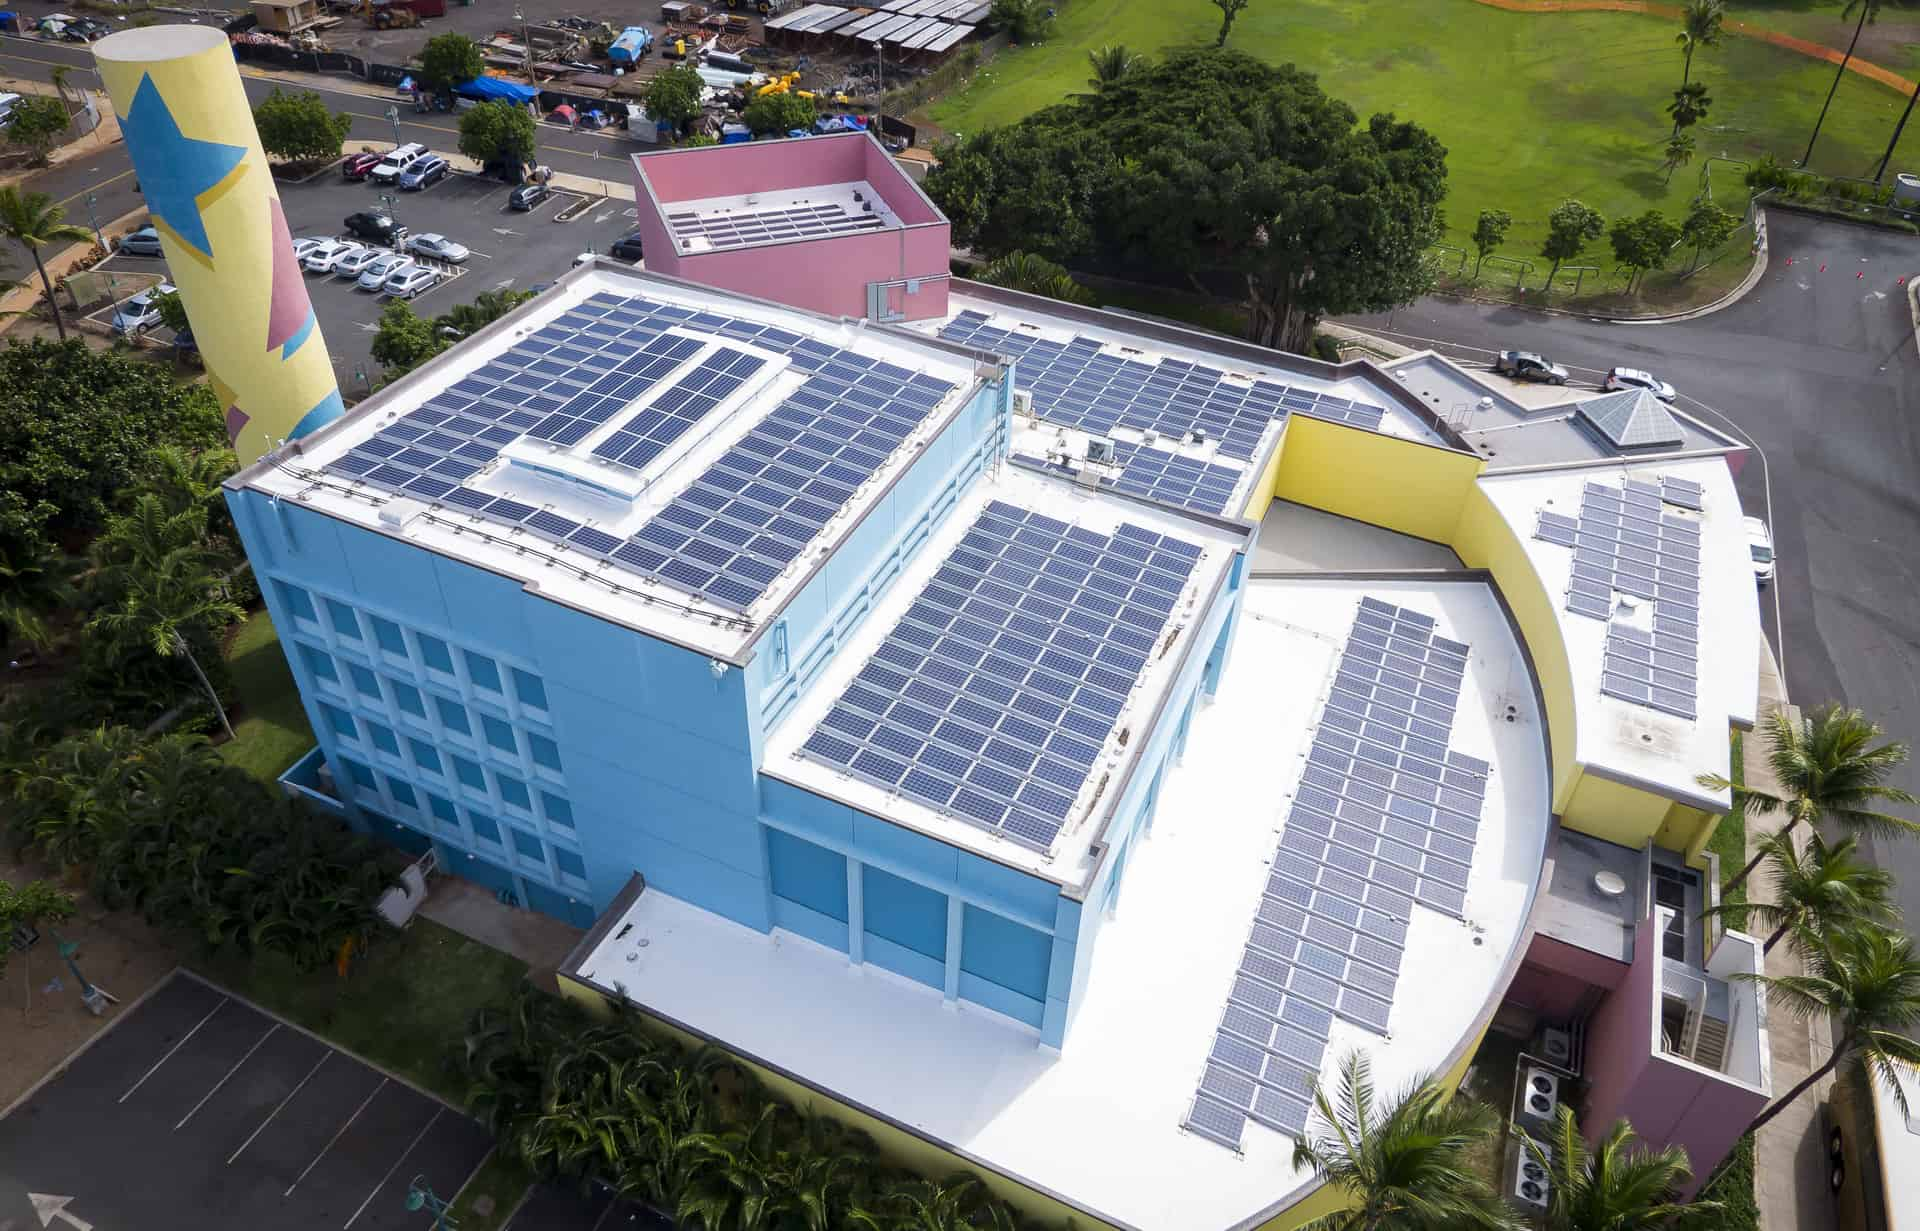 Aerial View of the Children's Discover Center showing solar panels on the roof.